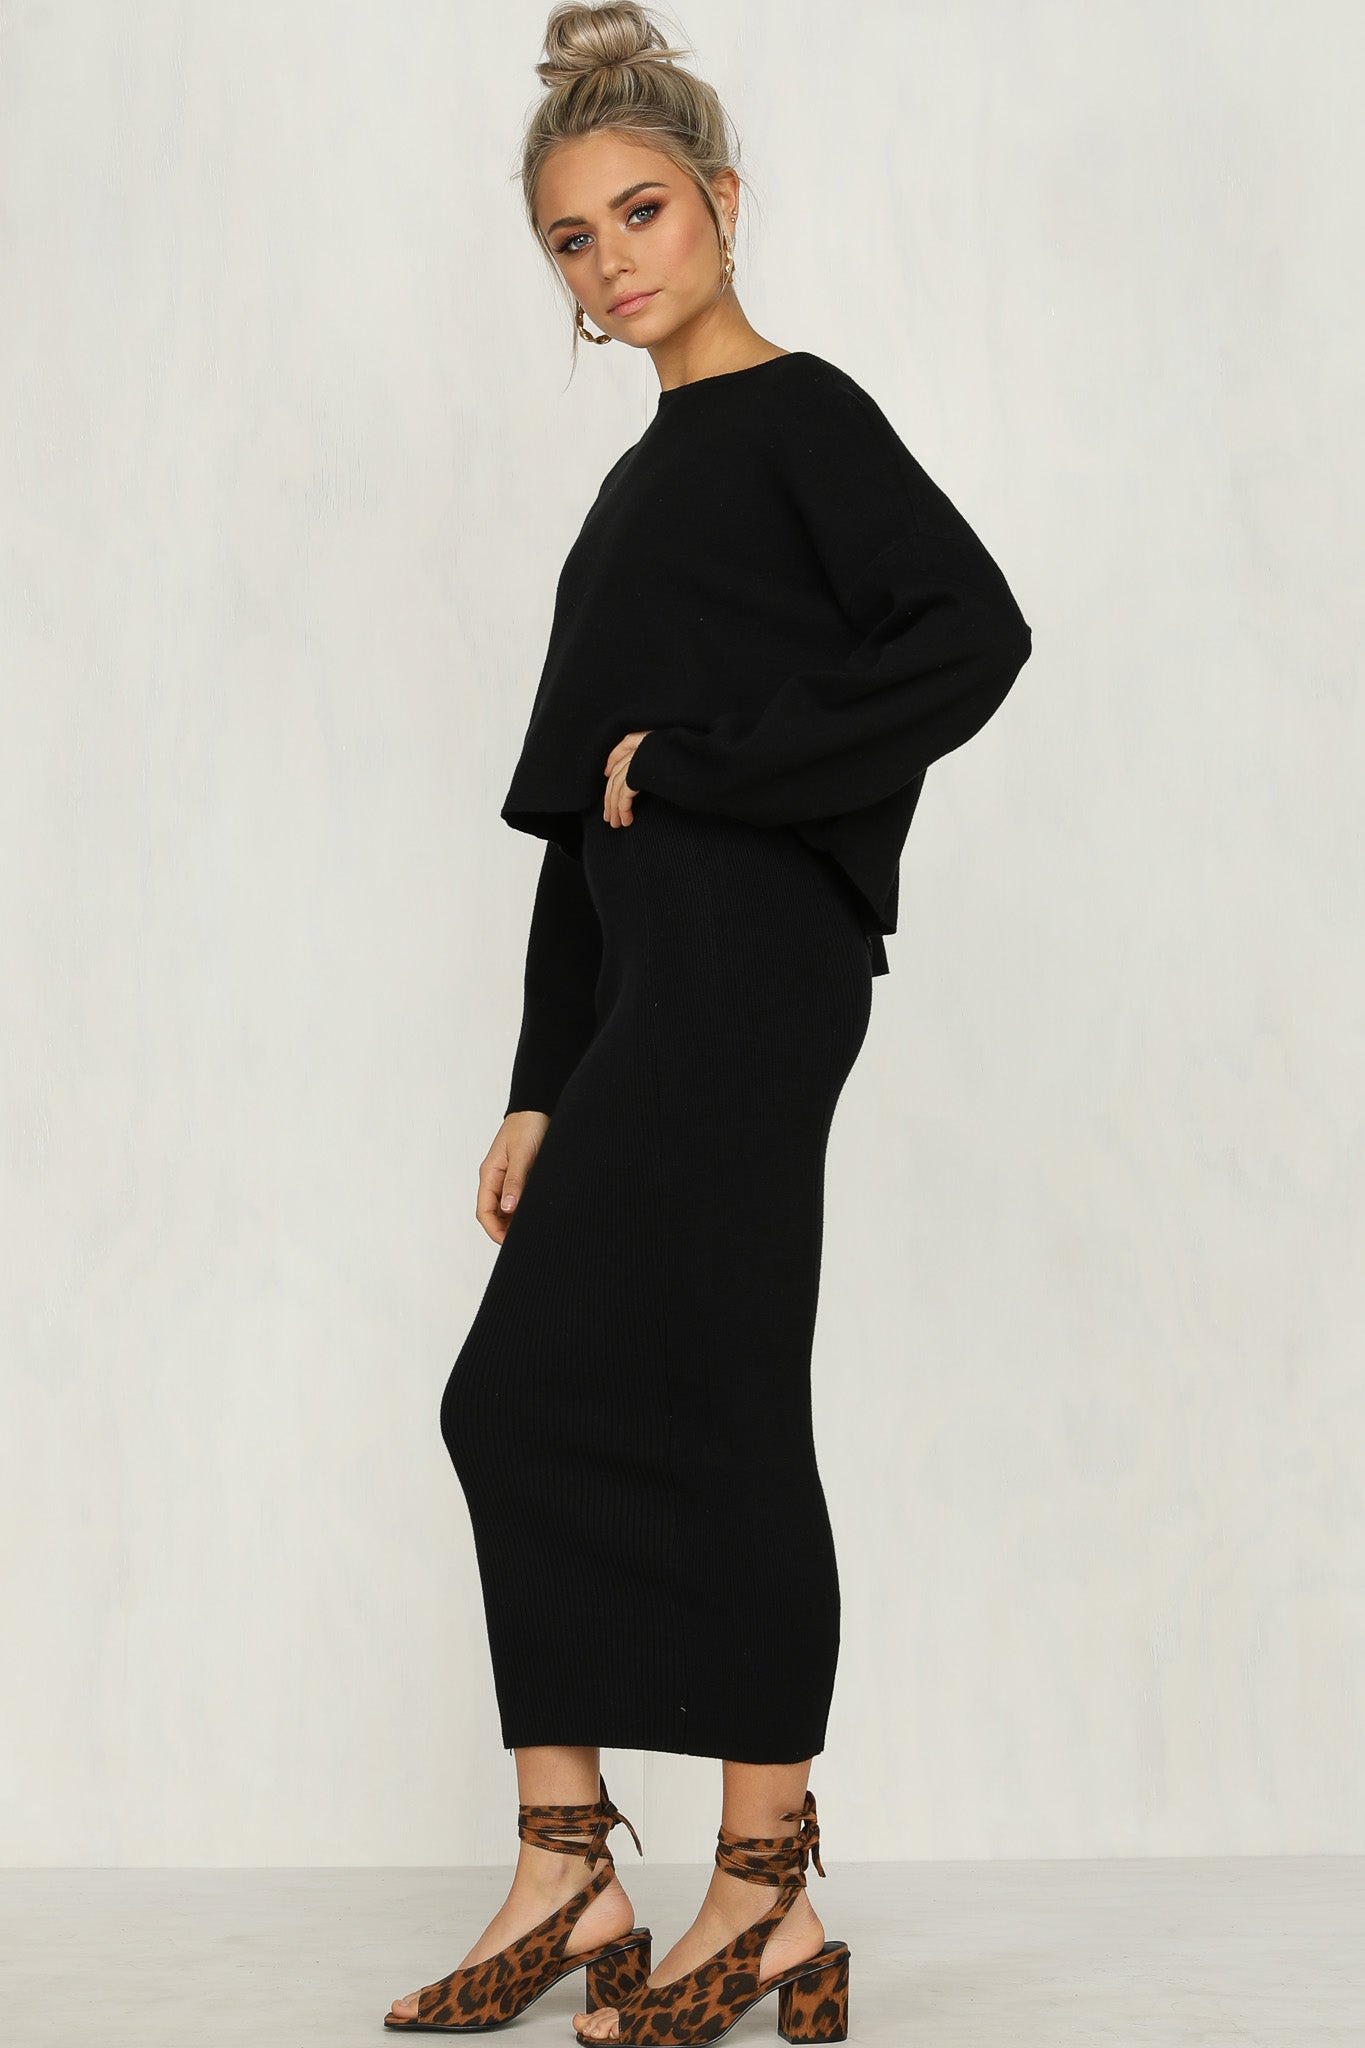 Perla Knit Skirt